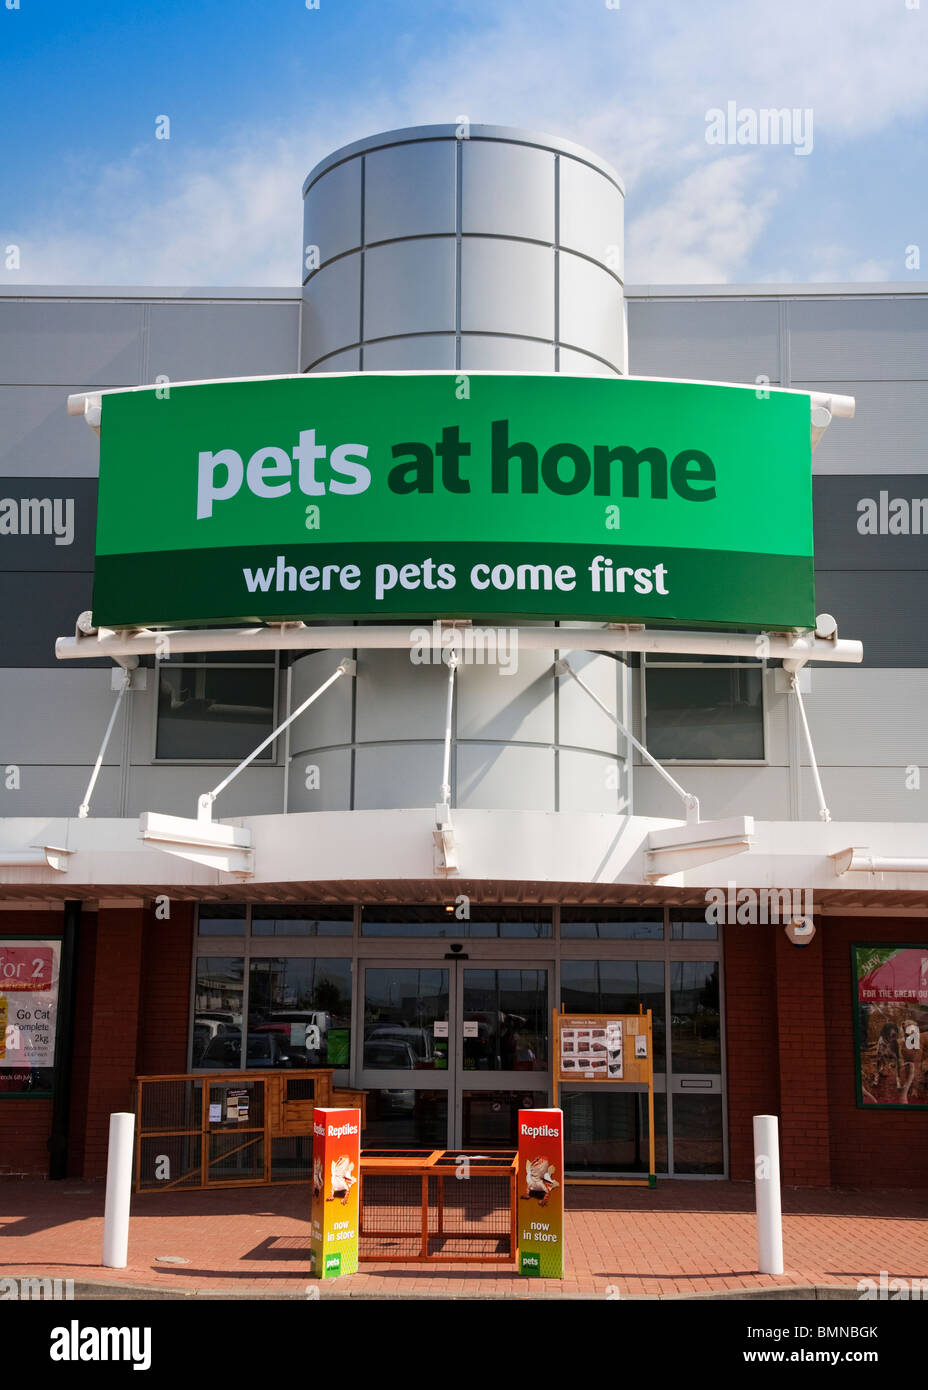 At Home entrance to the pets at home store retail park linwood stock photo royalty free image